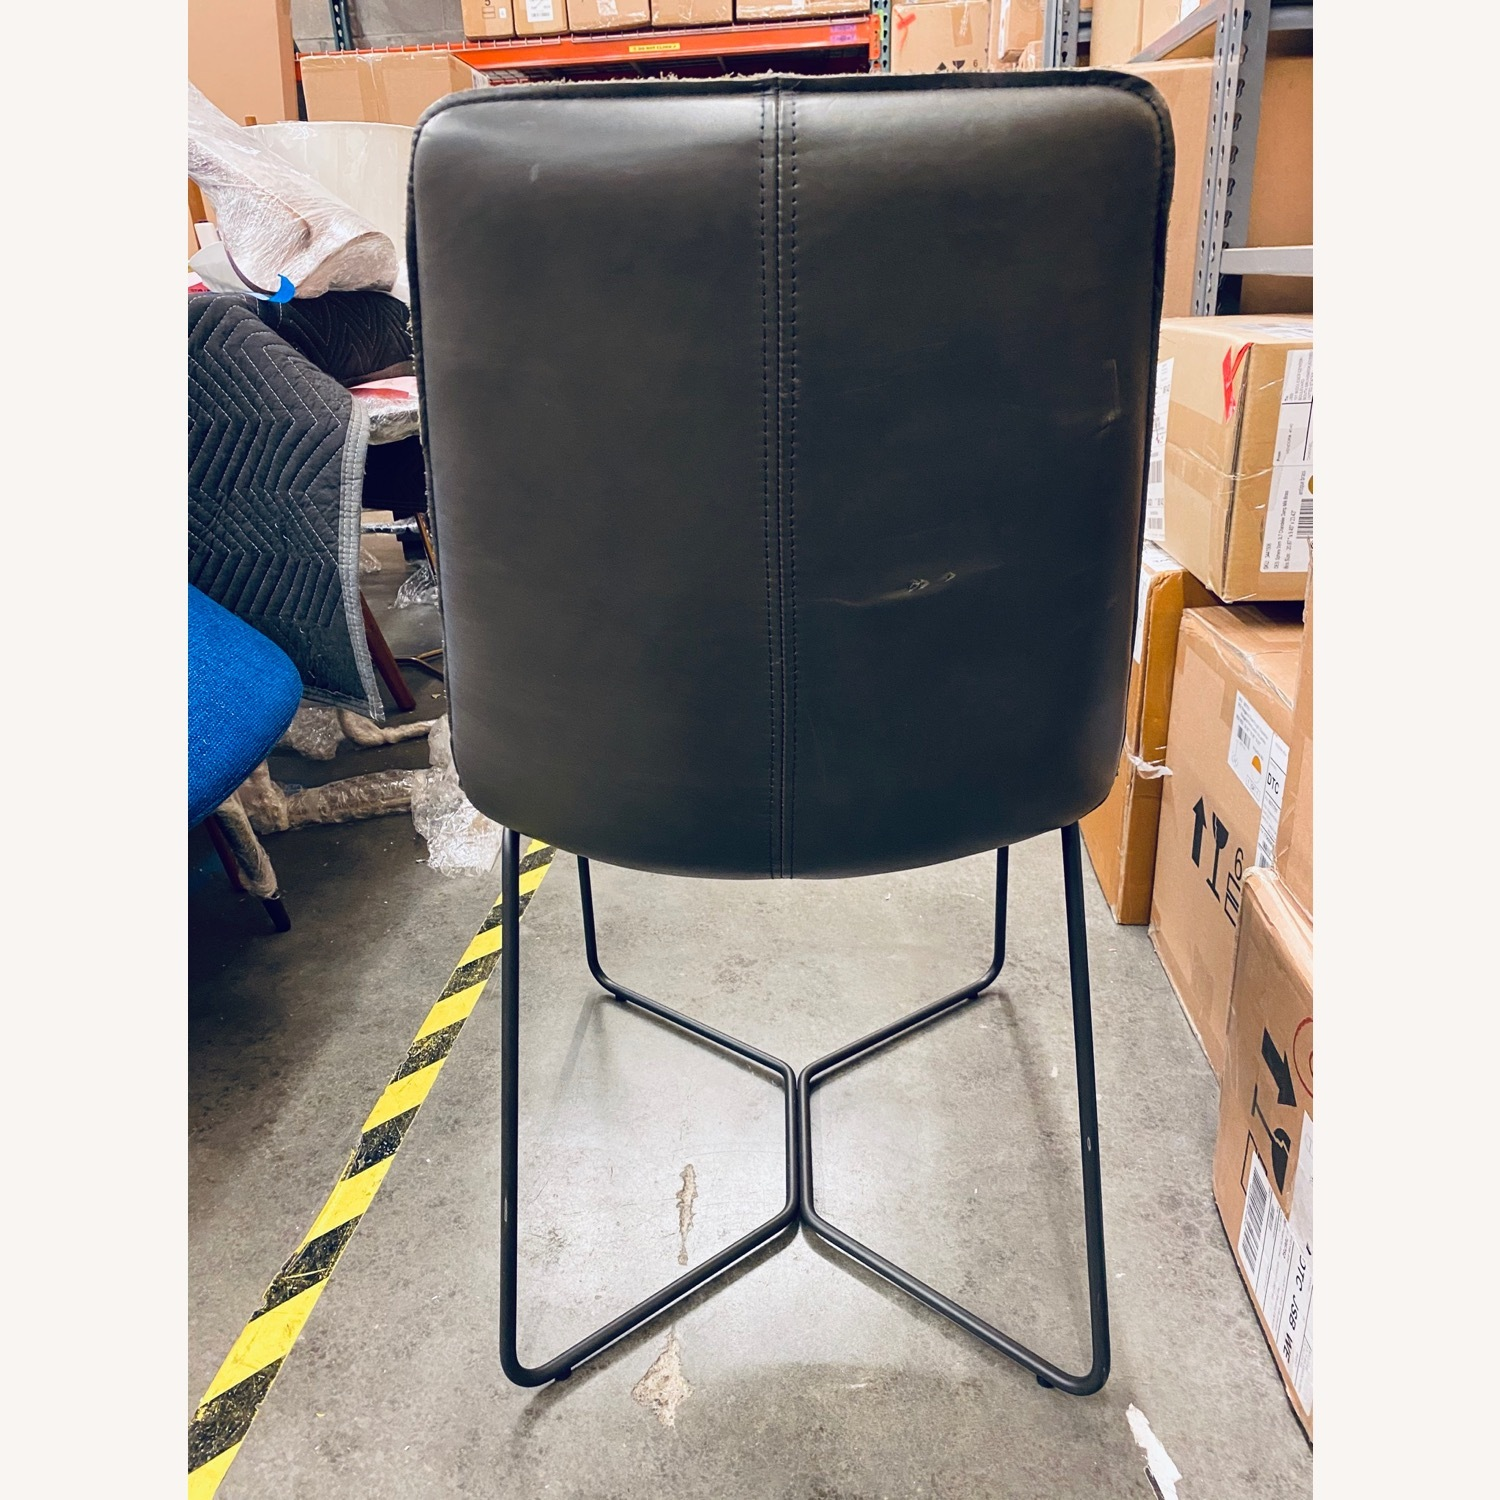 West Elm Slope Dining Chair in Charcoal Leather - image-7